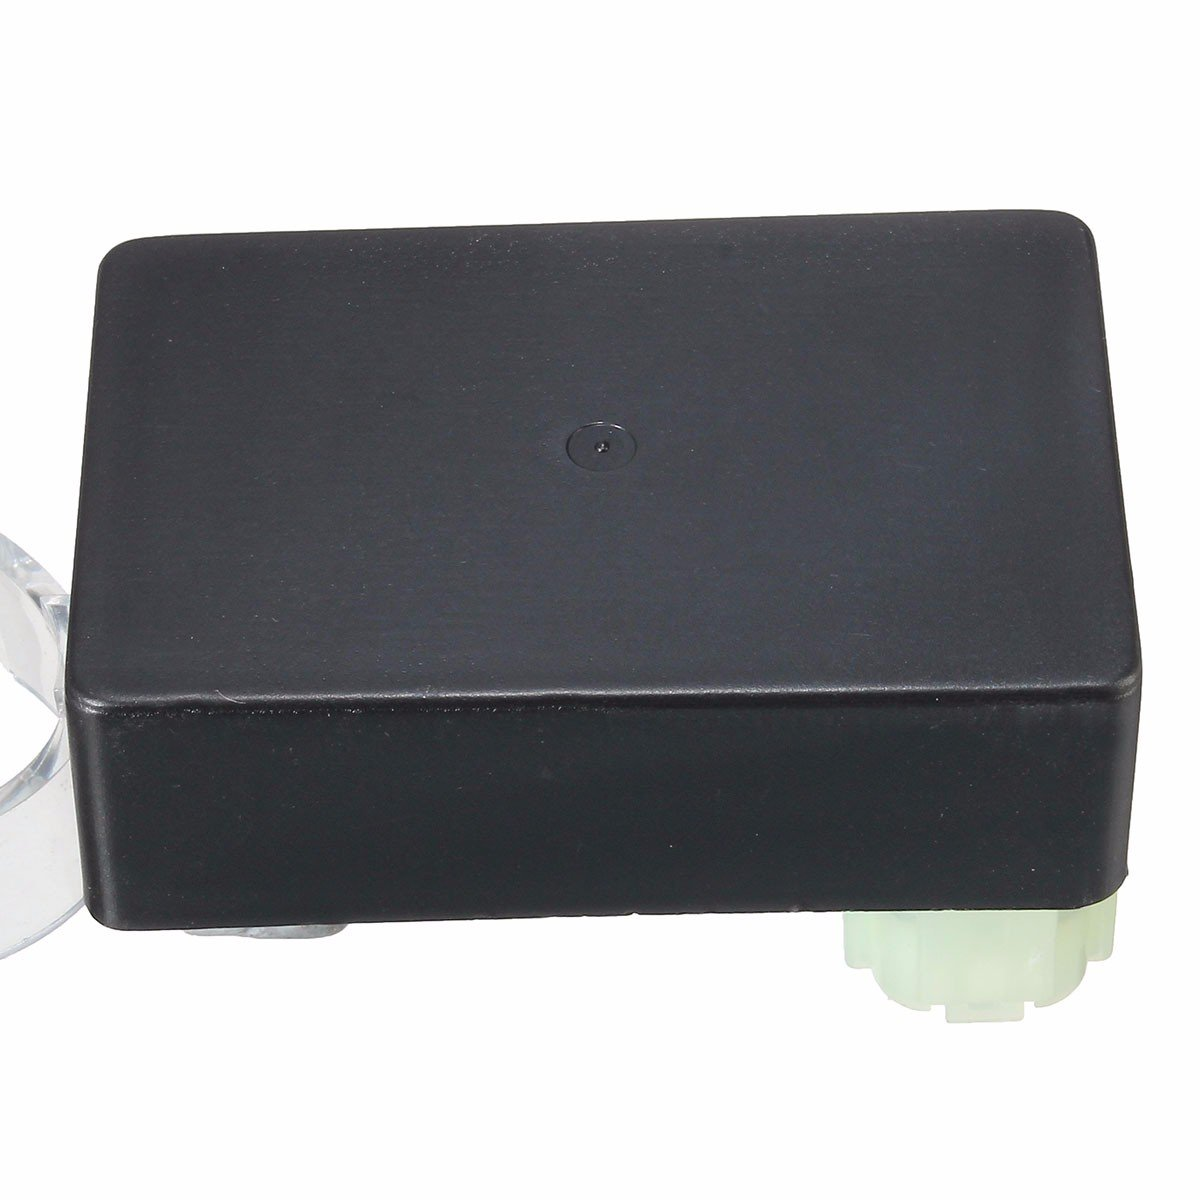 Kungfu Mall Allumage CDI REV Box pour Kymco Agility 50 125 People 4T 150 Sento 50 Scooter